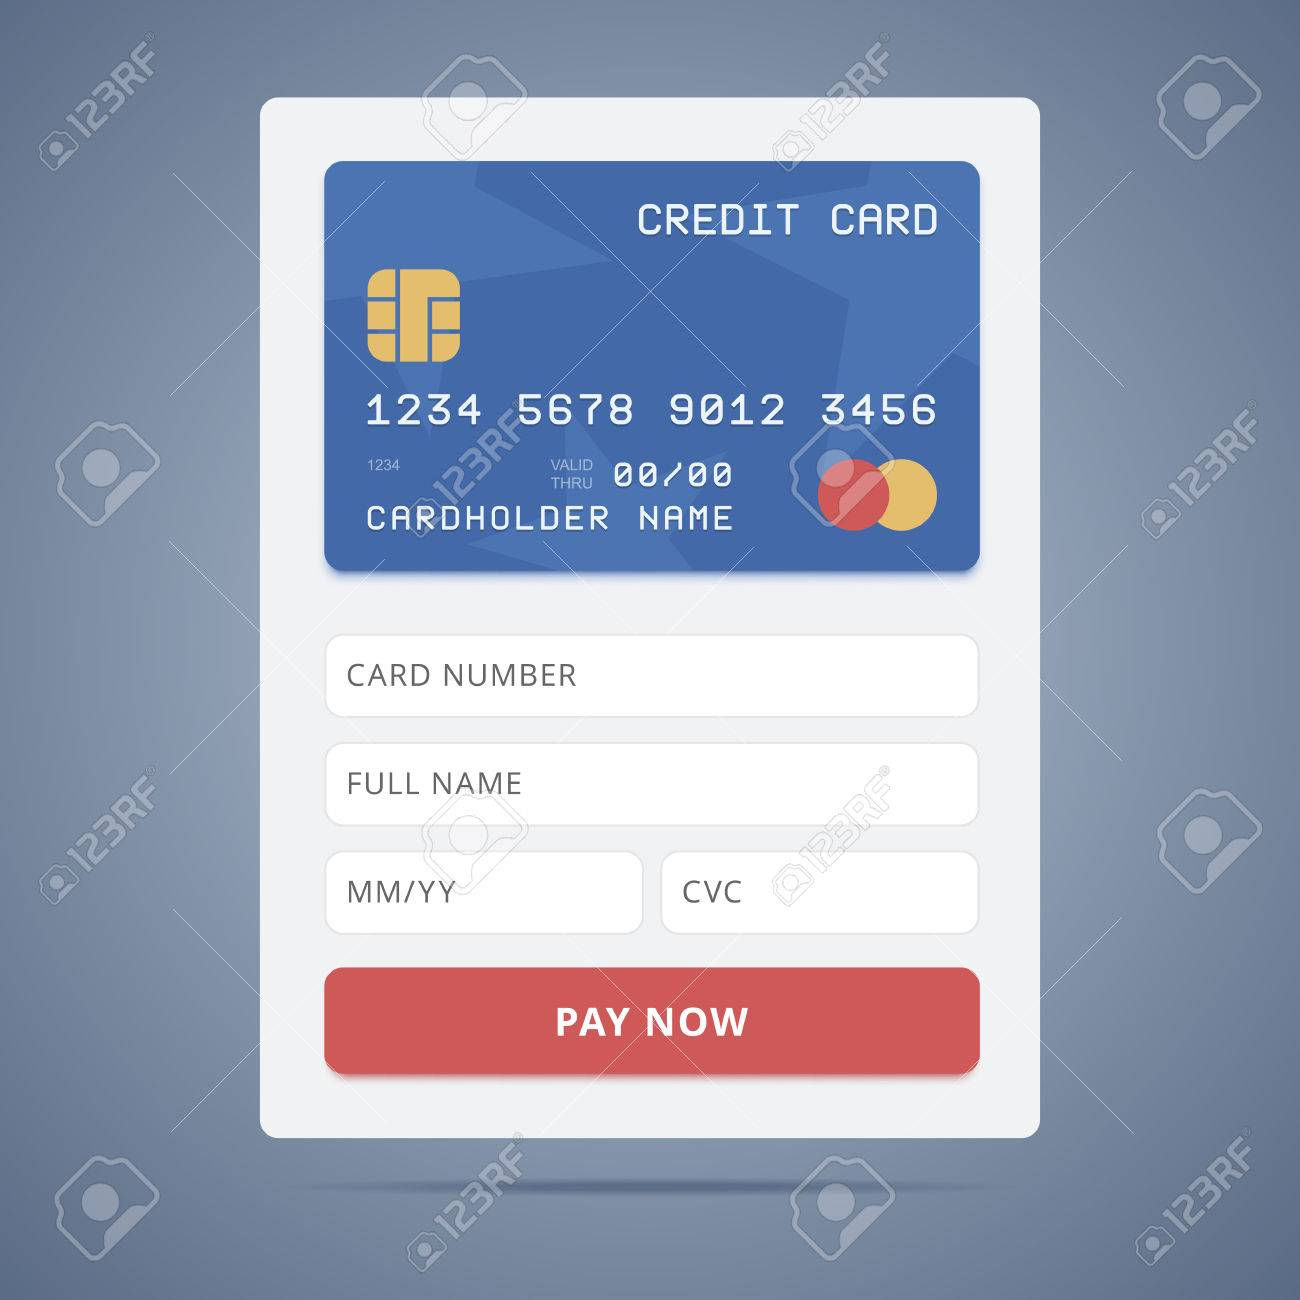 payment application form credit card illustration in flat payment application form credit card illustration in flat style and input forms stock vector